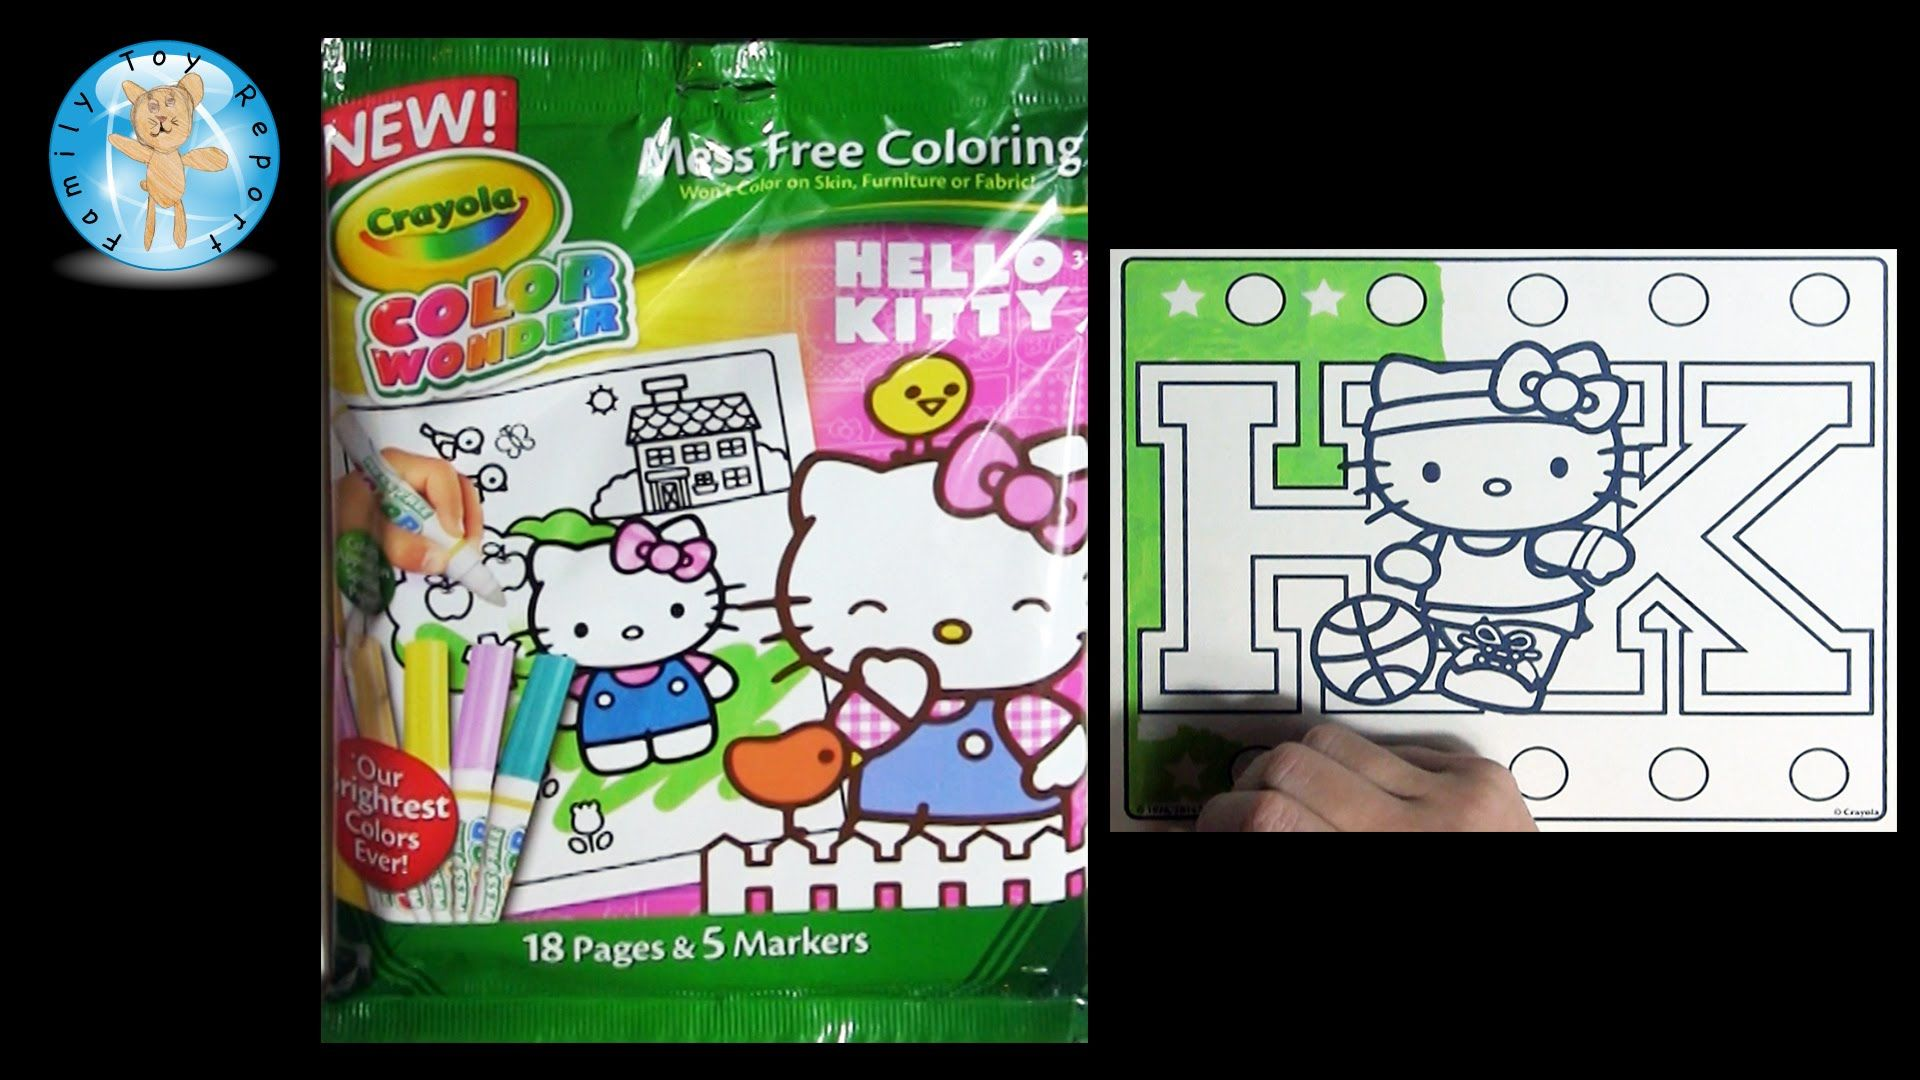 Crayola color wonder hello kitty coloring book basketball player family toy report crayola colorwonder coloringbook coloring hellokitty basketball